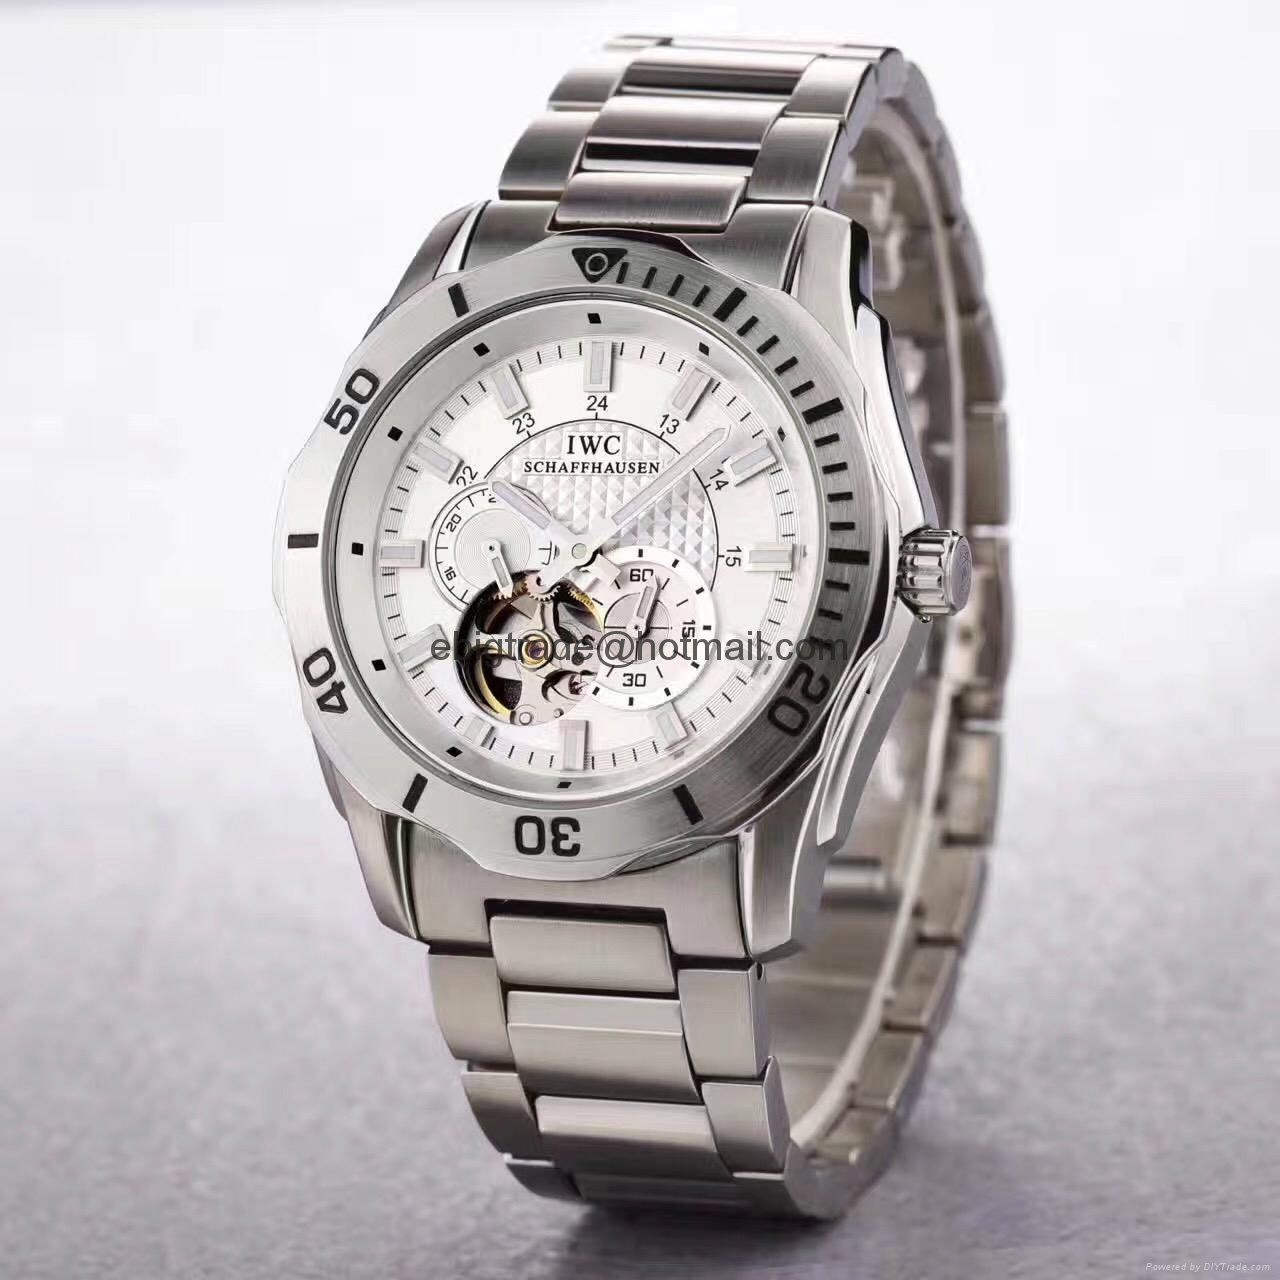 Cheap IWC Watches for men Luxury IWC Watches Price replica ...